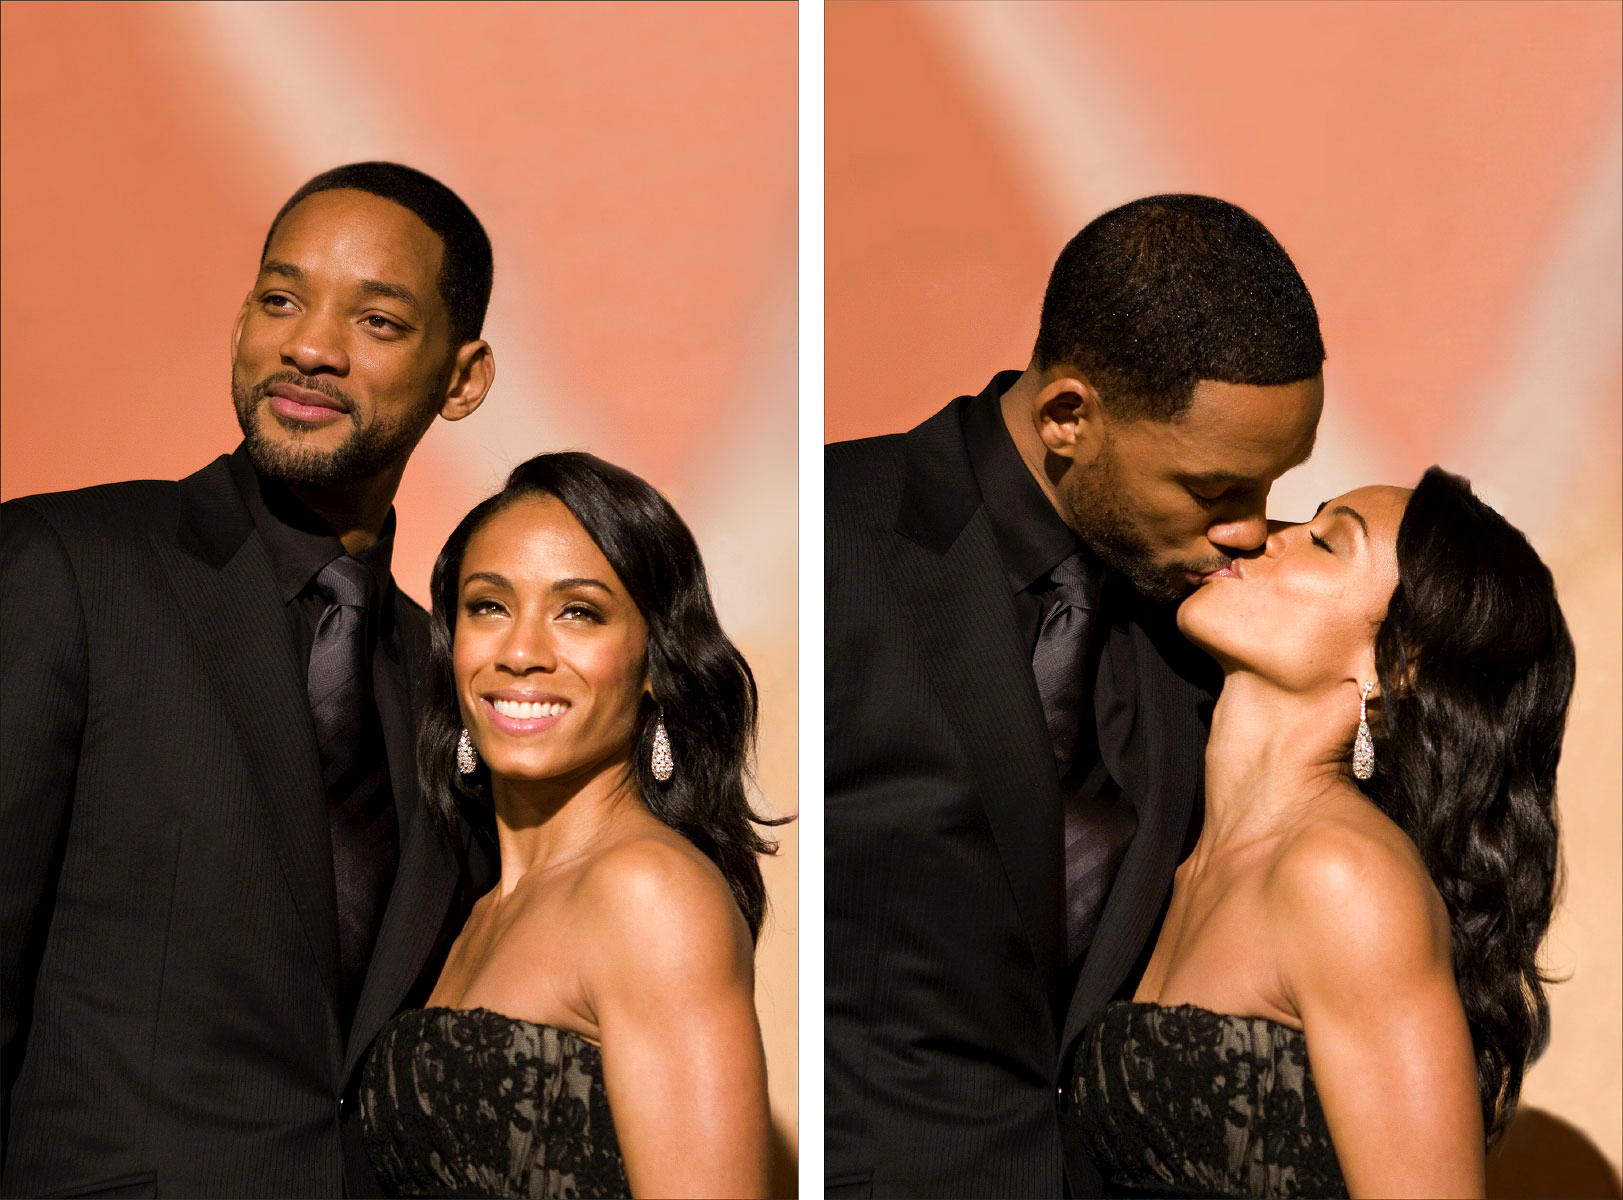 Acting legend Will Smith and wife Jada Pinkett Smith pause for love during the Santa Barbara International Film Festival.(for The New Yorker)